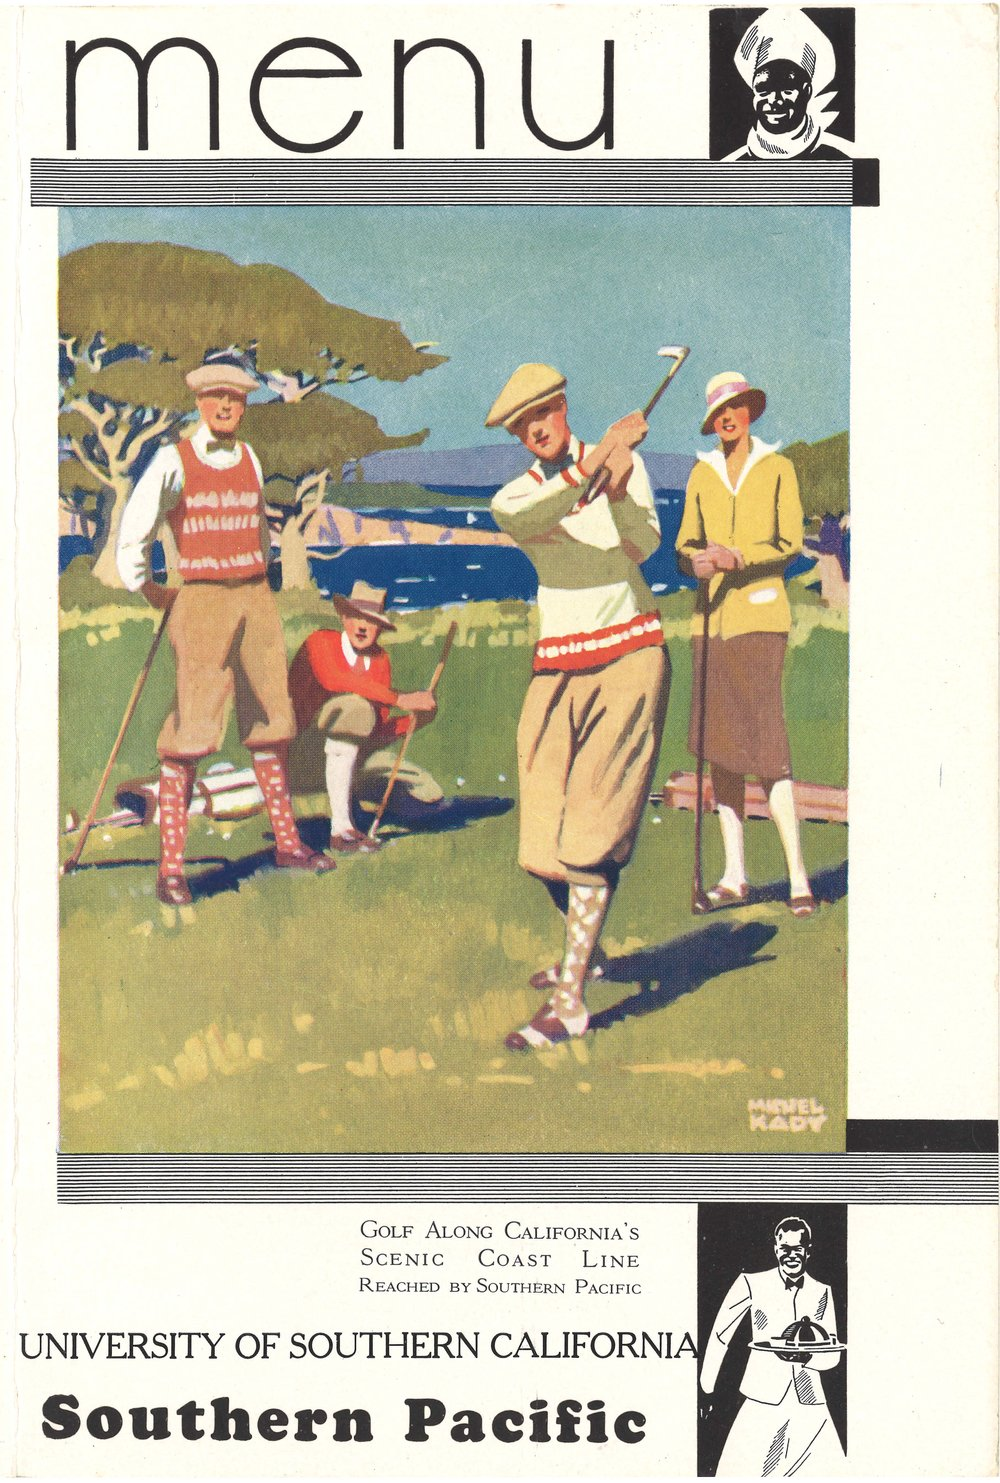 SP Southern California Golf Along Menu_sm1.jpg